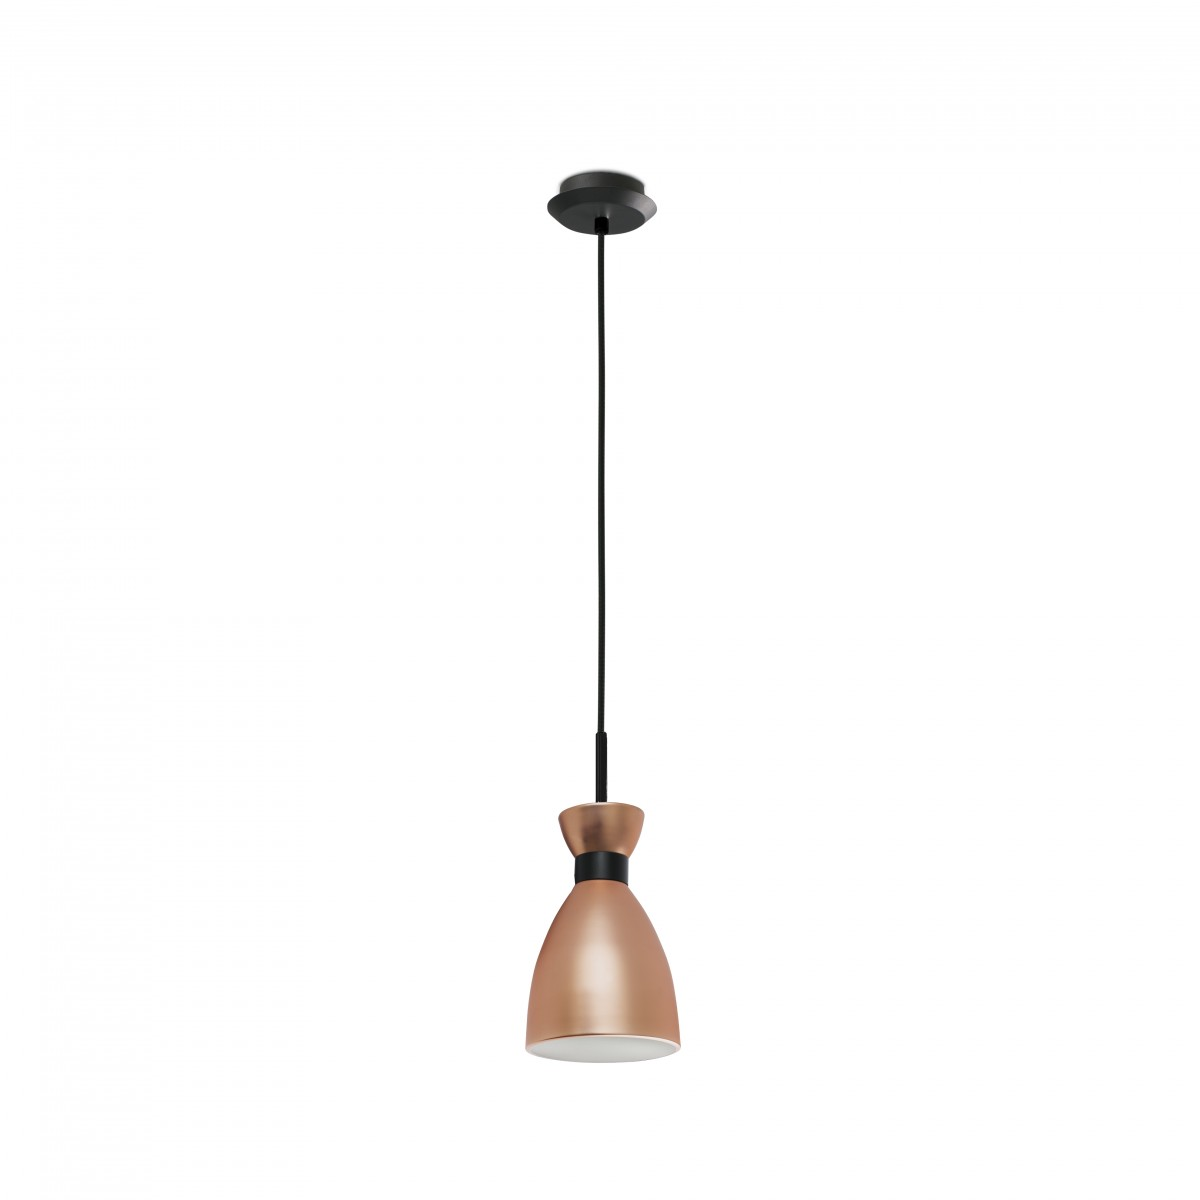 Lampe Suspension Cuivre Retro Lampe Suspension Cuivre